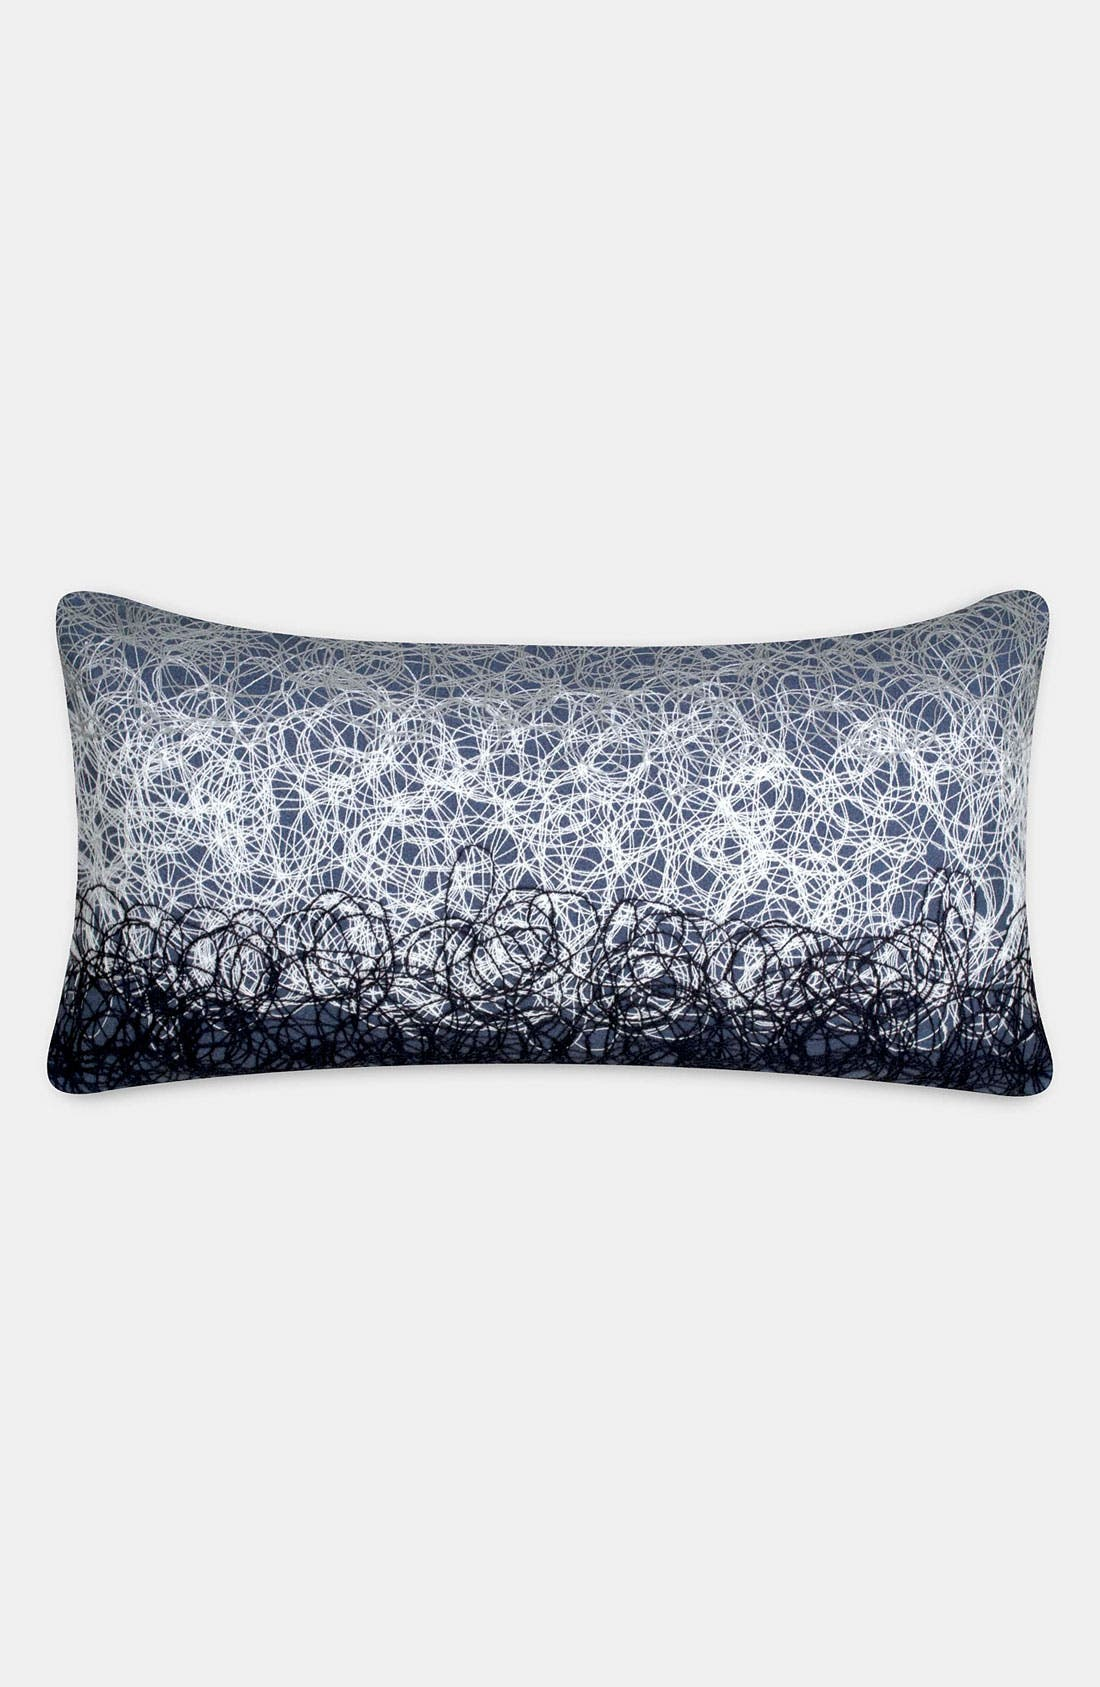 Main Image - DKNY 'City Rhythm - City Scribble' Pillow